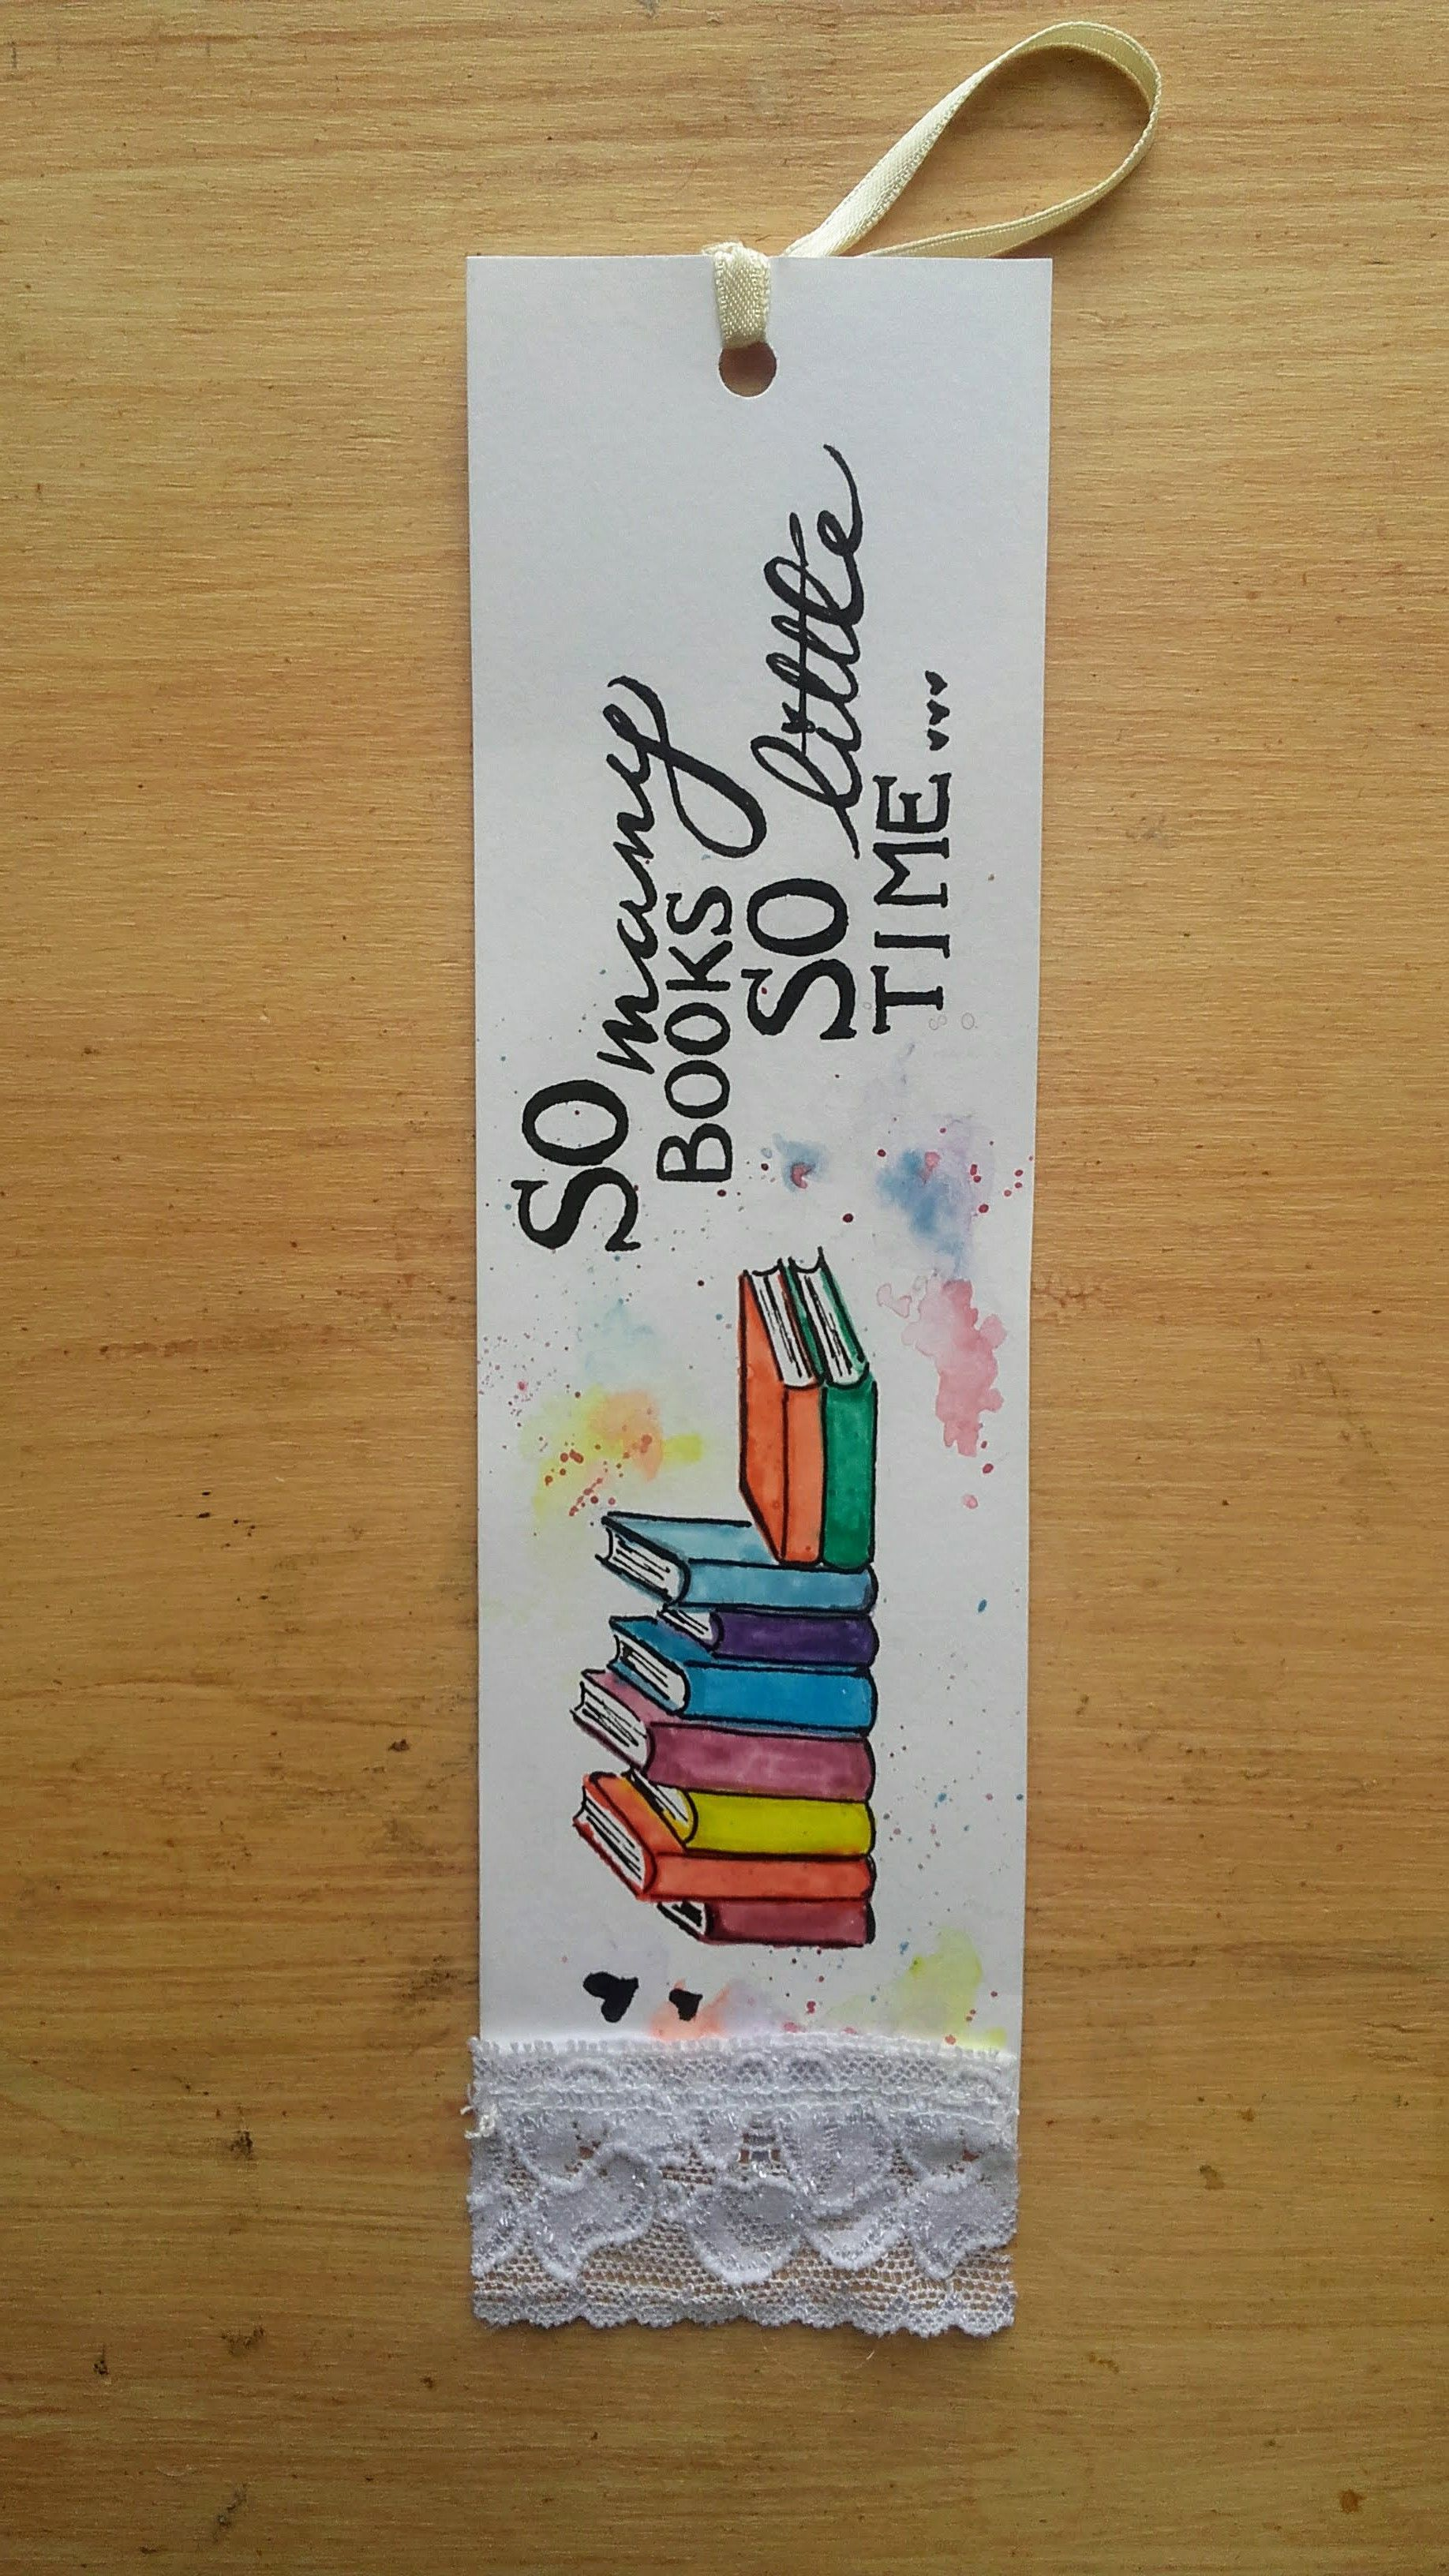 Handmade Bookmark With Watercolor Books Design Handlettered Calligraphy Quote So Many Books So Bookmarks Handmade Creative Bookmarks Handmade Bookmarks Diy